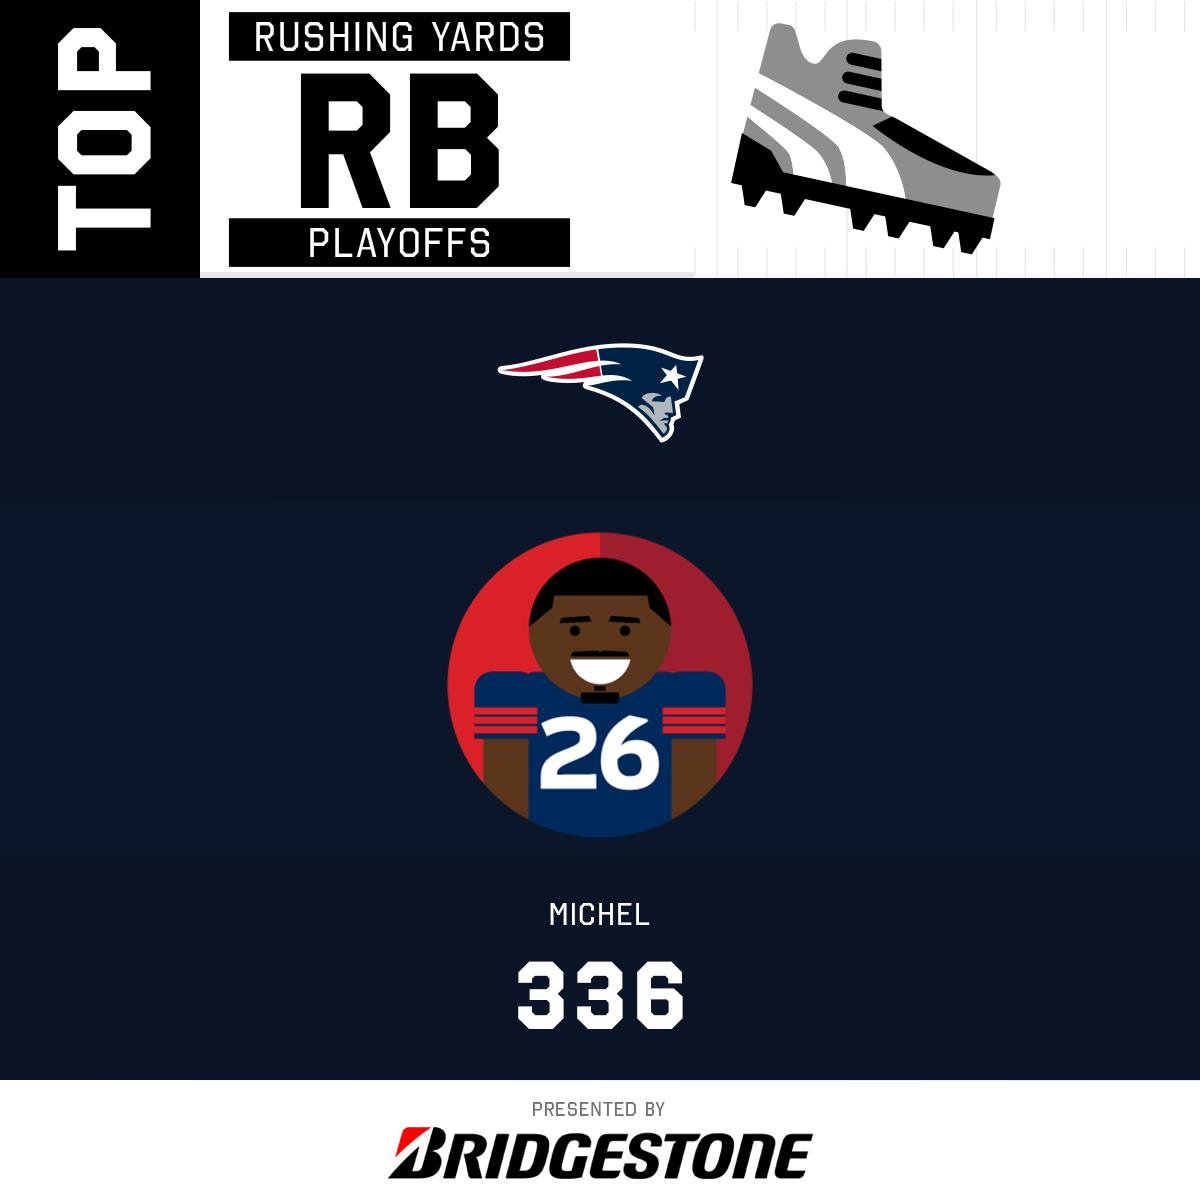 .@Flyguy2stackz led all playoff RBs with 336 rushing yards... as a rookie! #EverythingWeGot  (by @Bridgestone) https://t.co/uiUayG0cSg